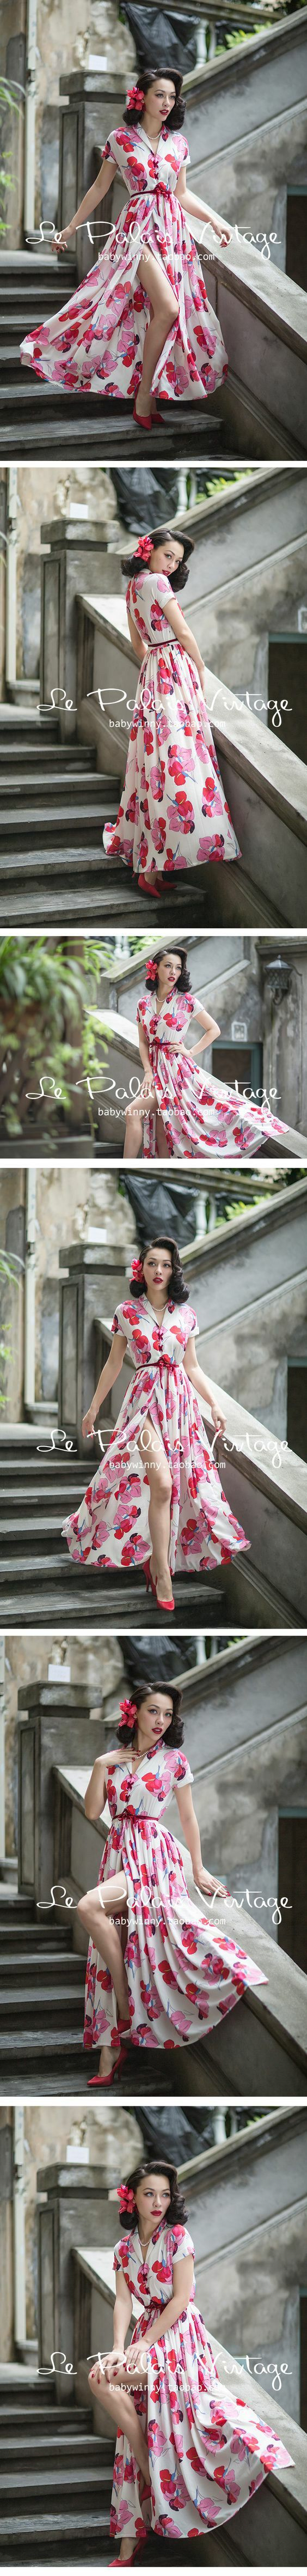 Rockabilly Pinup In Long Floral Dress